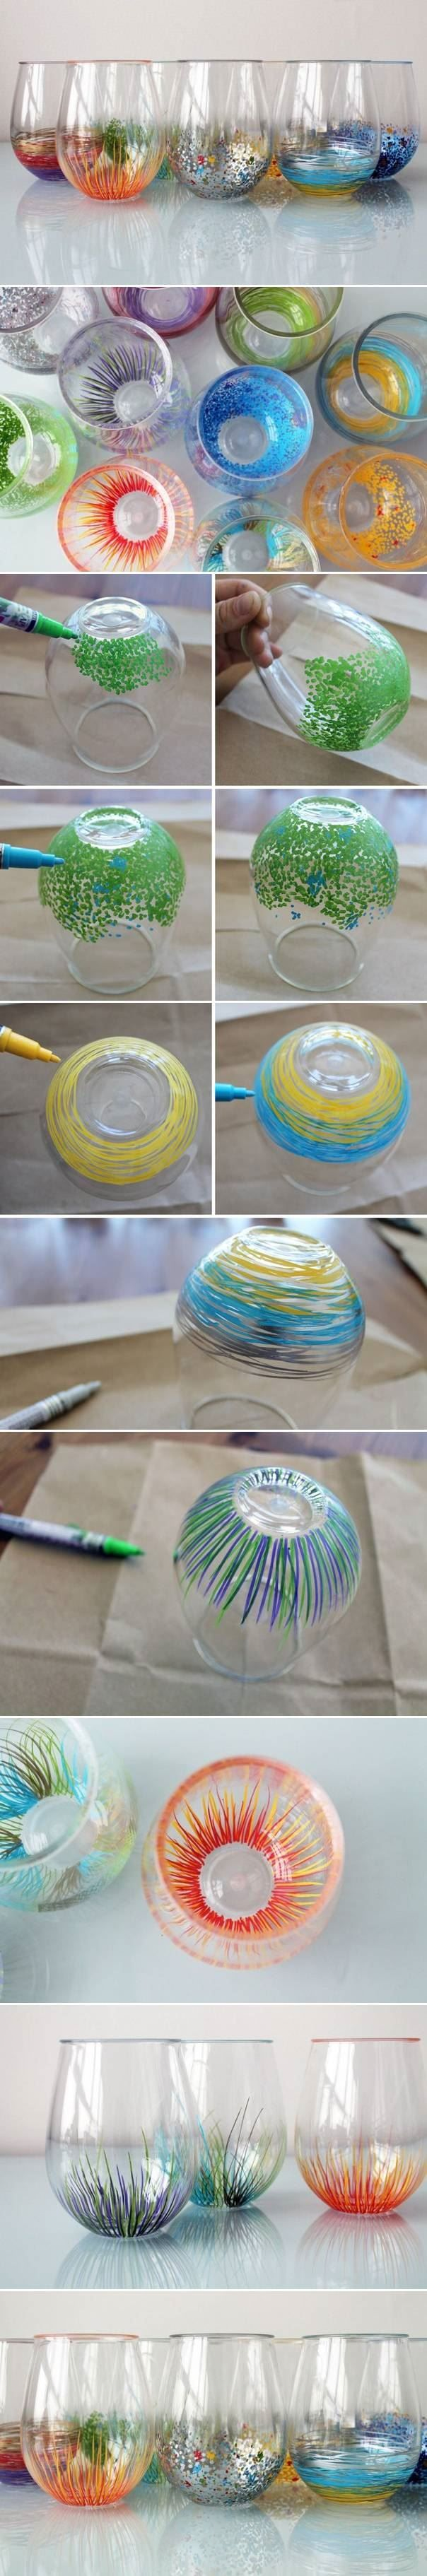 Add a Pop of Color to Your Glassware! is part of Fun diy crafts - So colorful!